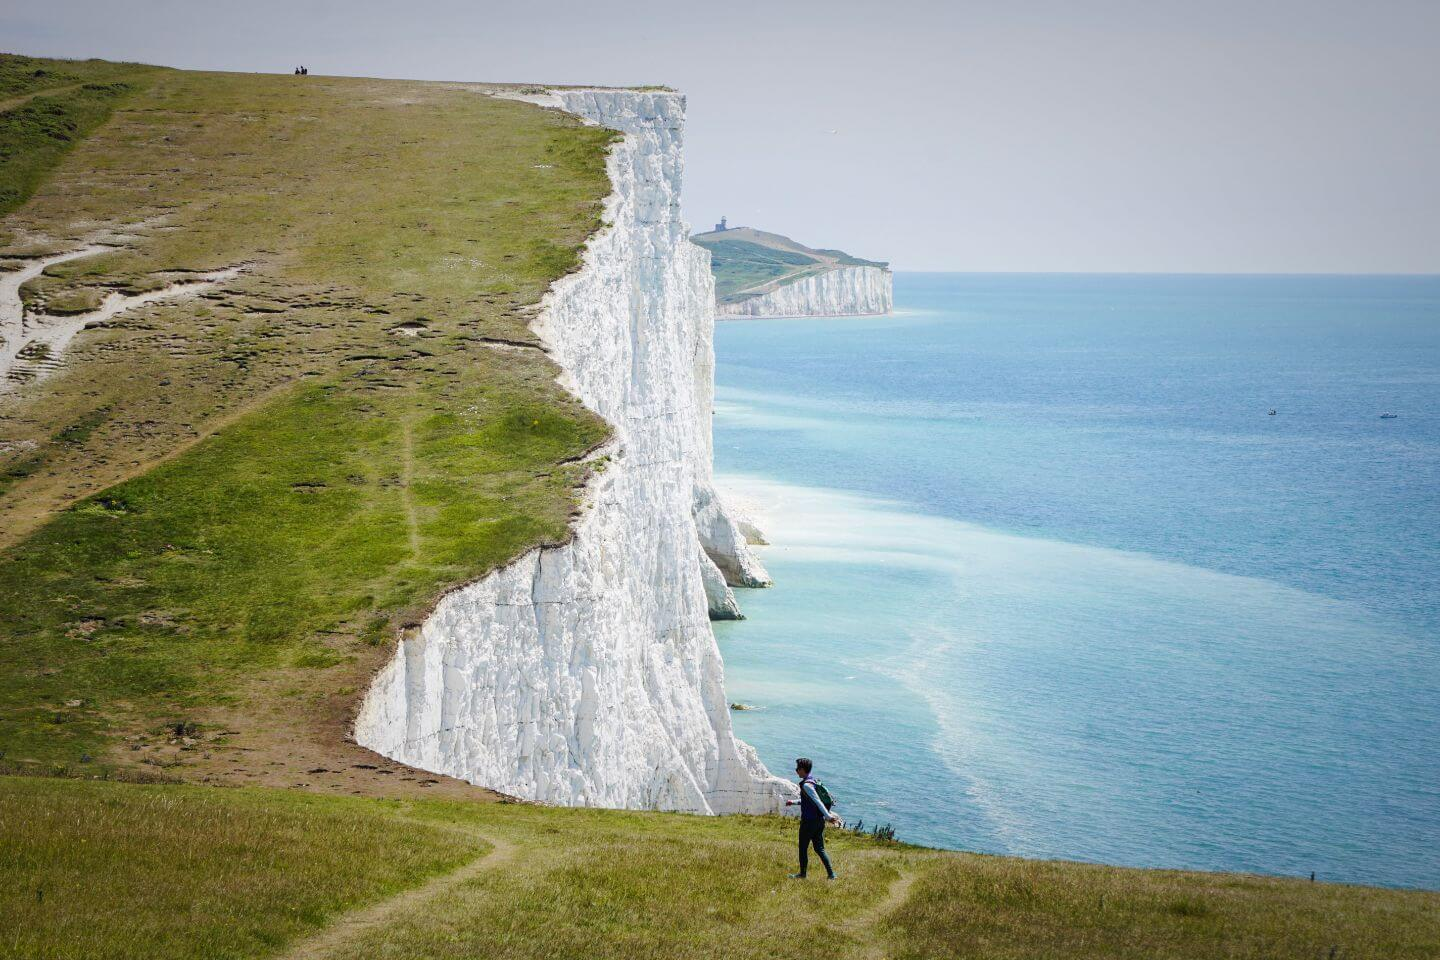 Seven Sisters Cliffs Walk: Hike from Seaford to Eastbourne